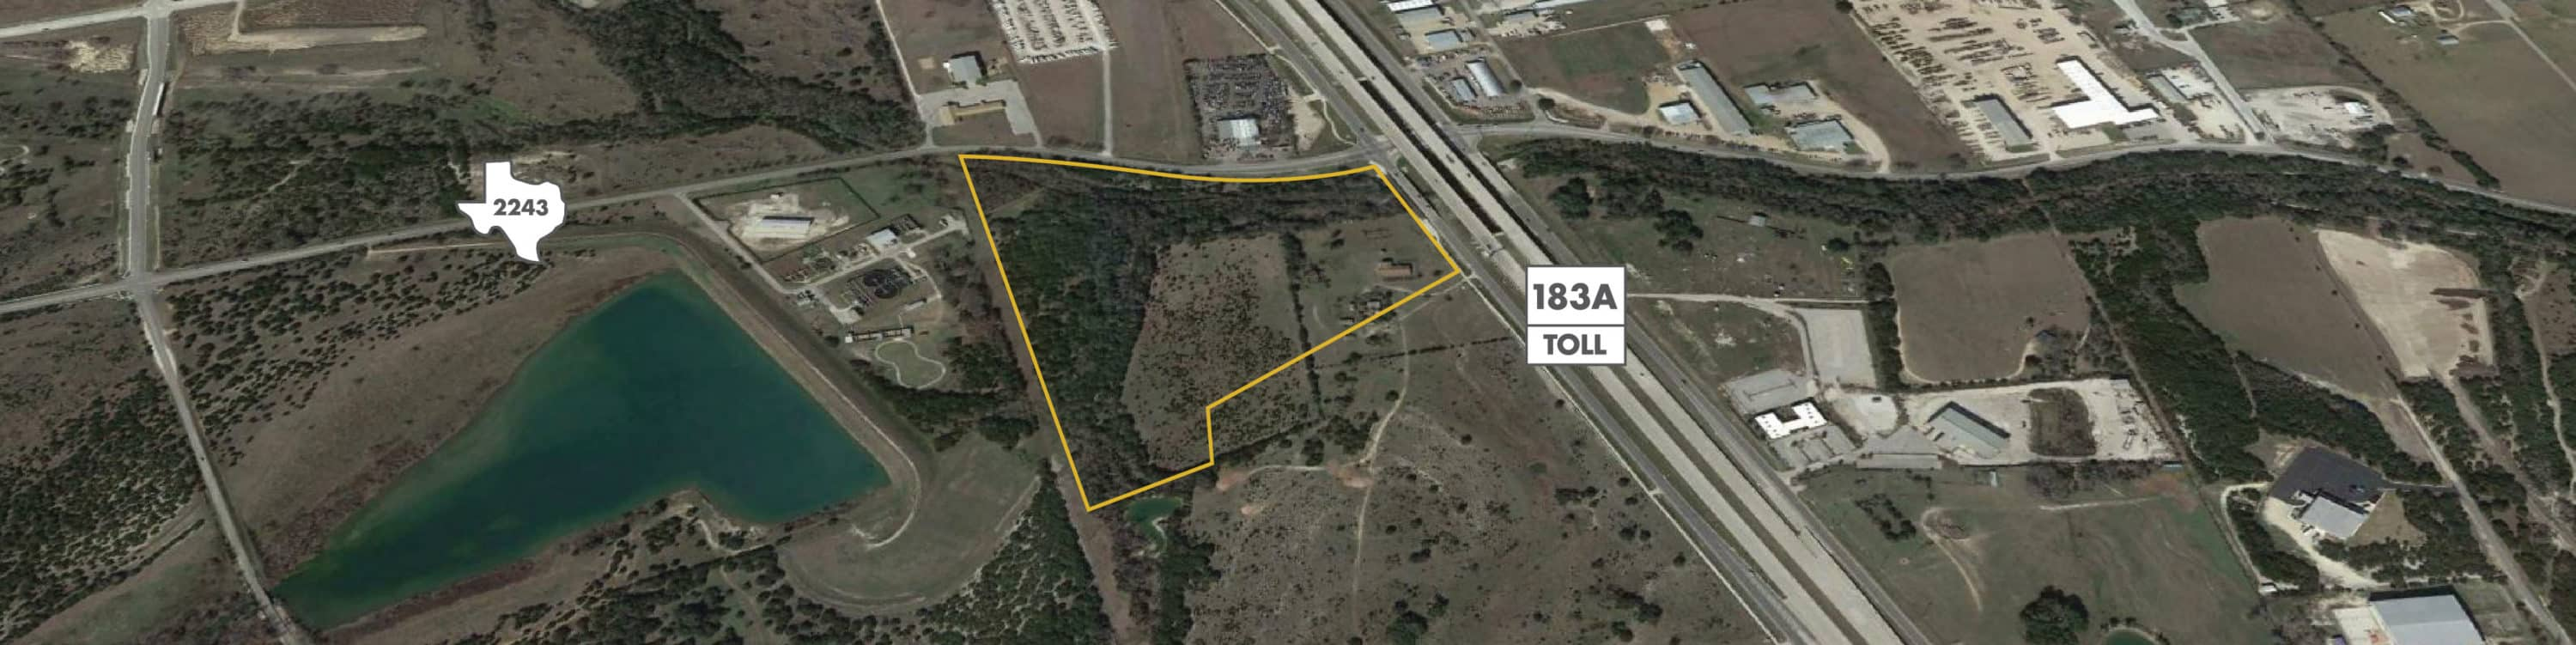 FM 2243 & 183A Available Lot   Land for Sale in Leander, Texas